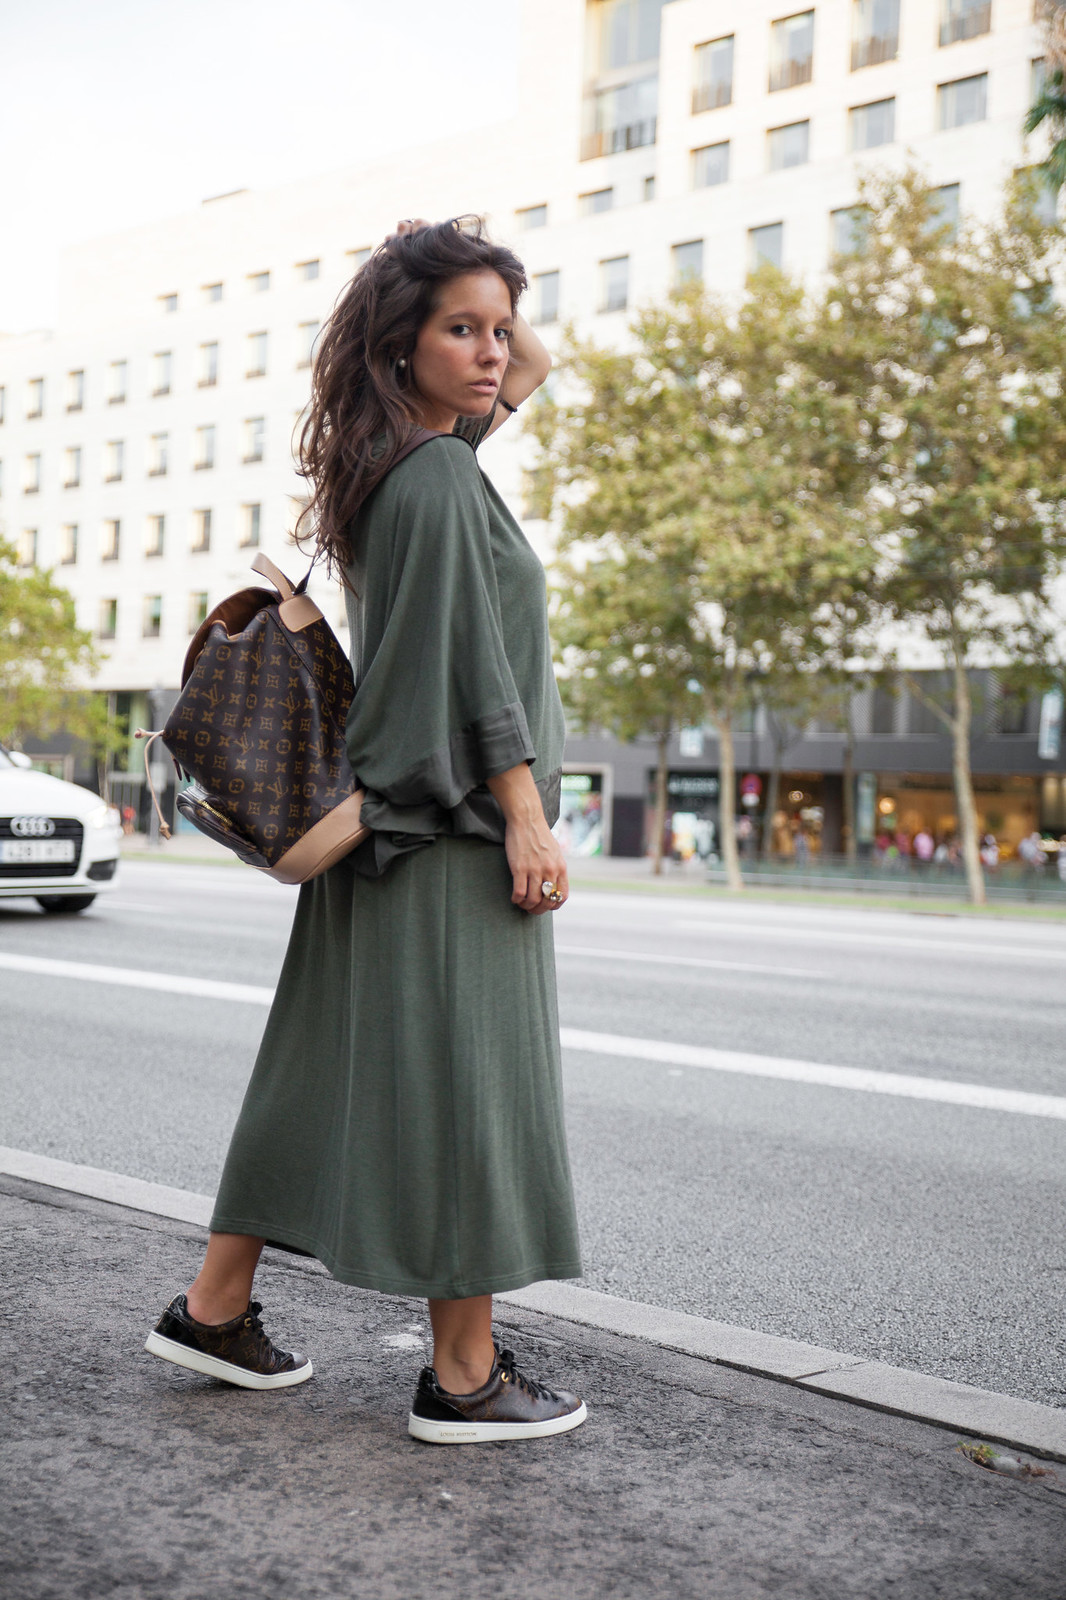 09_RÜGA_Fall_Winter_2018_2019_brand_ambassador_spain_fashion_influencer_pregnant_embarazada_look_barcelona_theguestgirl_laura_santolaria